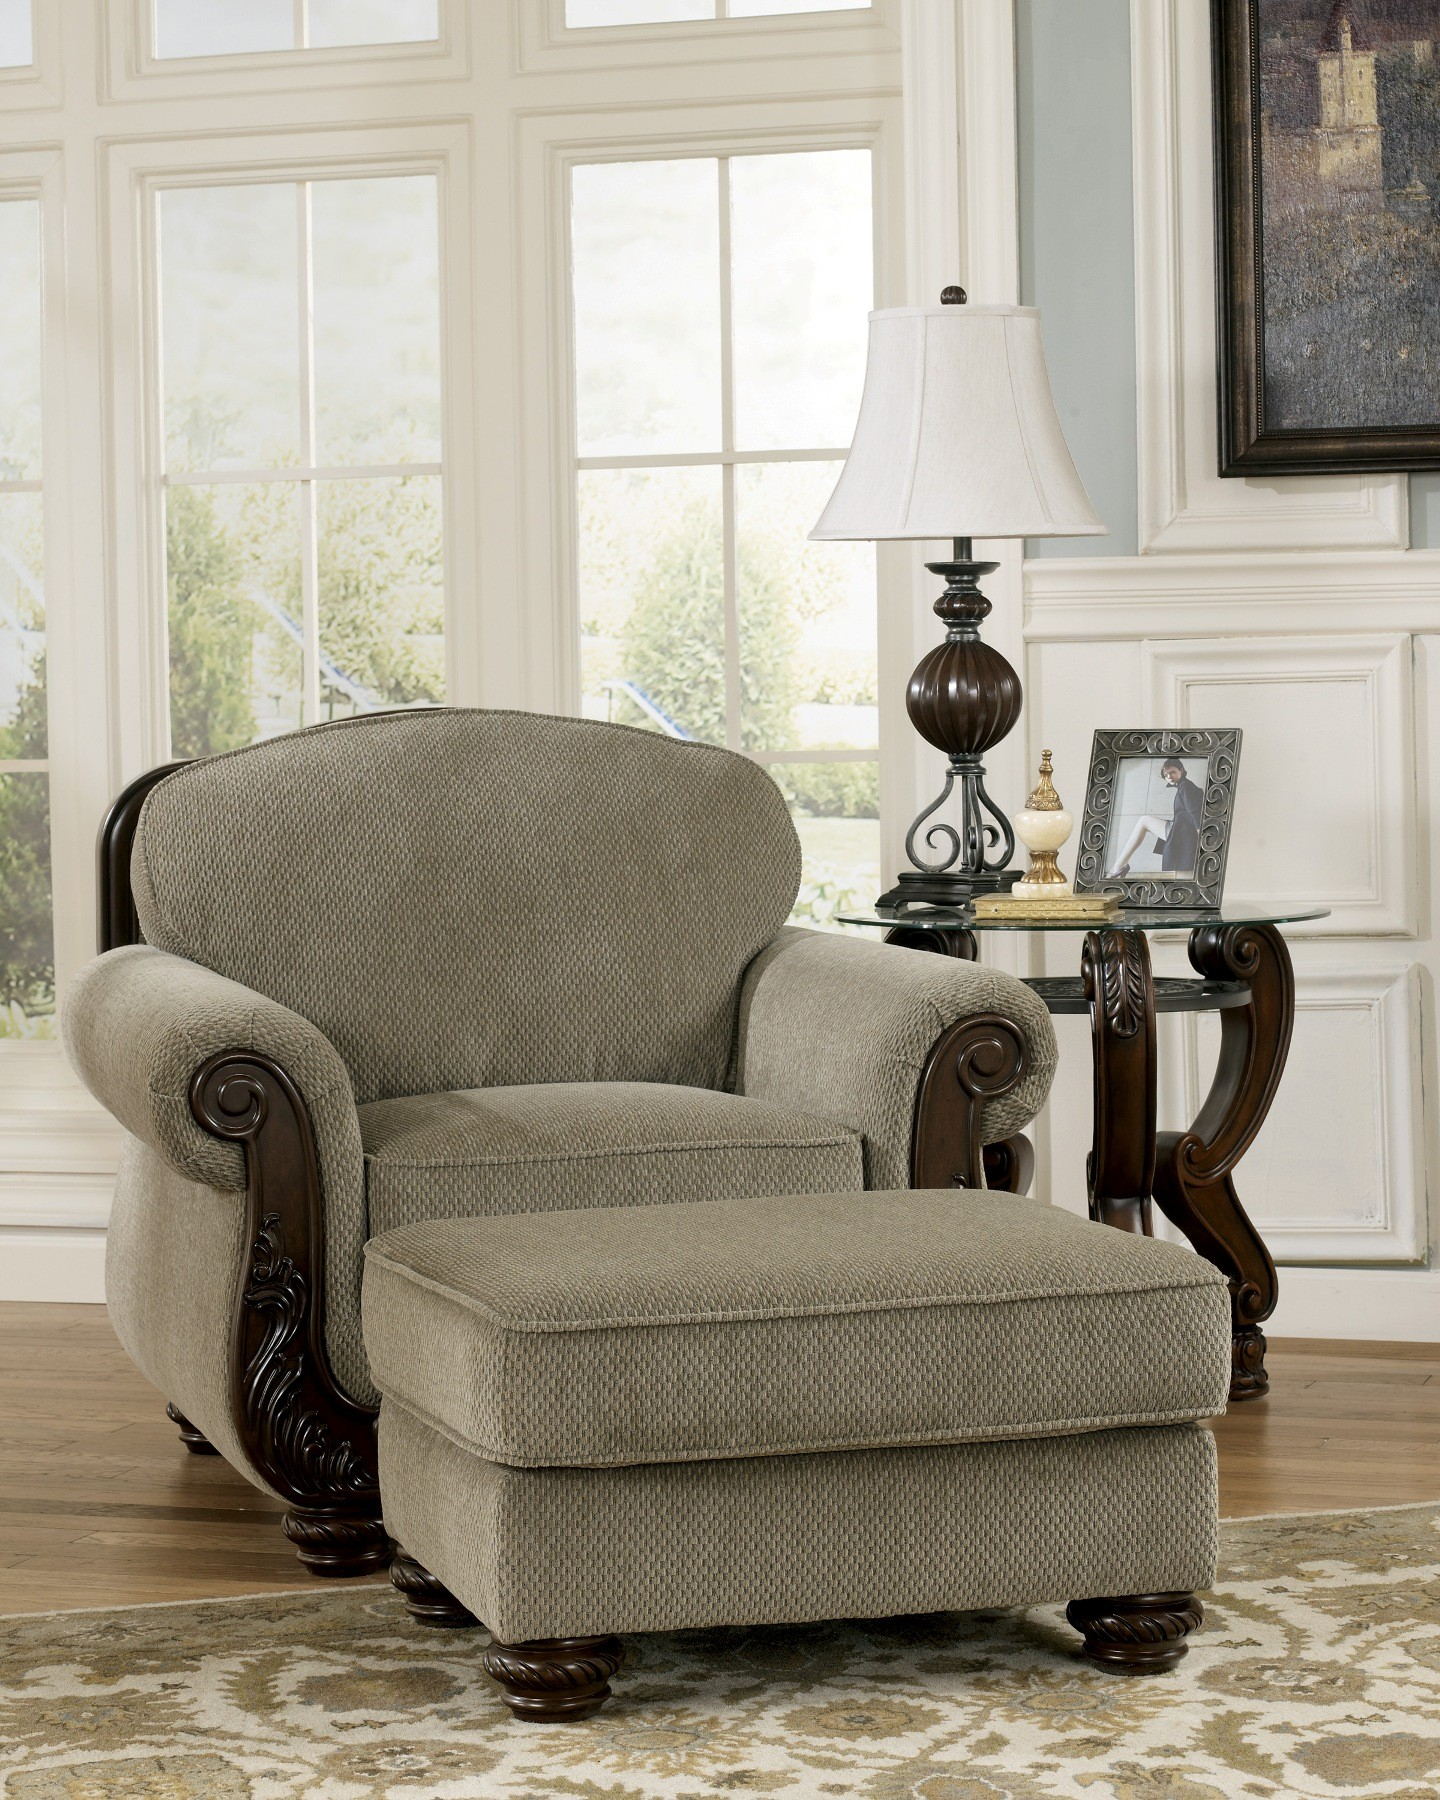 Martinsburg Meadow Living Room Set from Ashley (57300) | Coleman Furniture